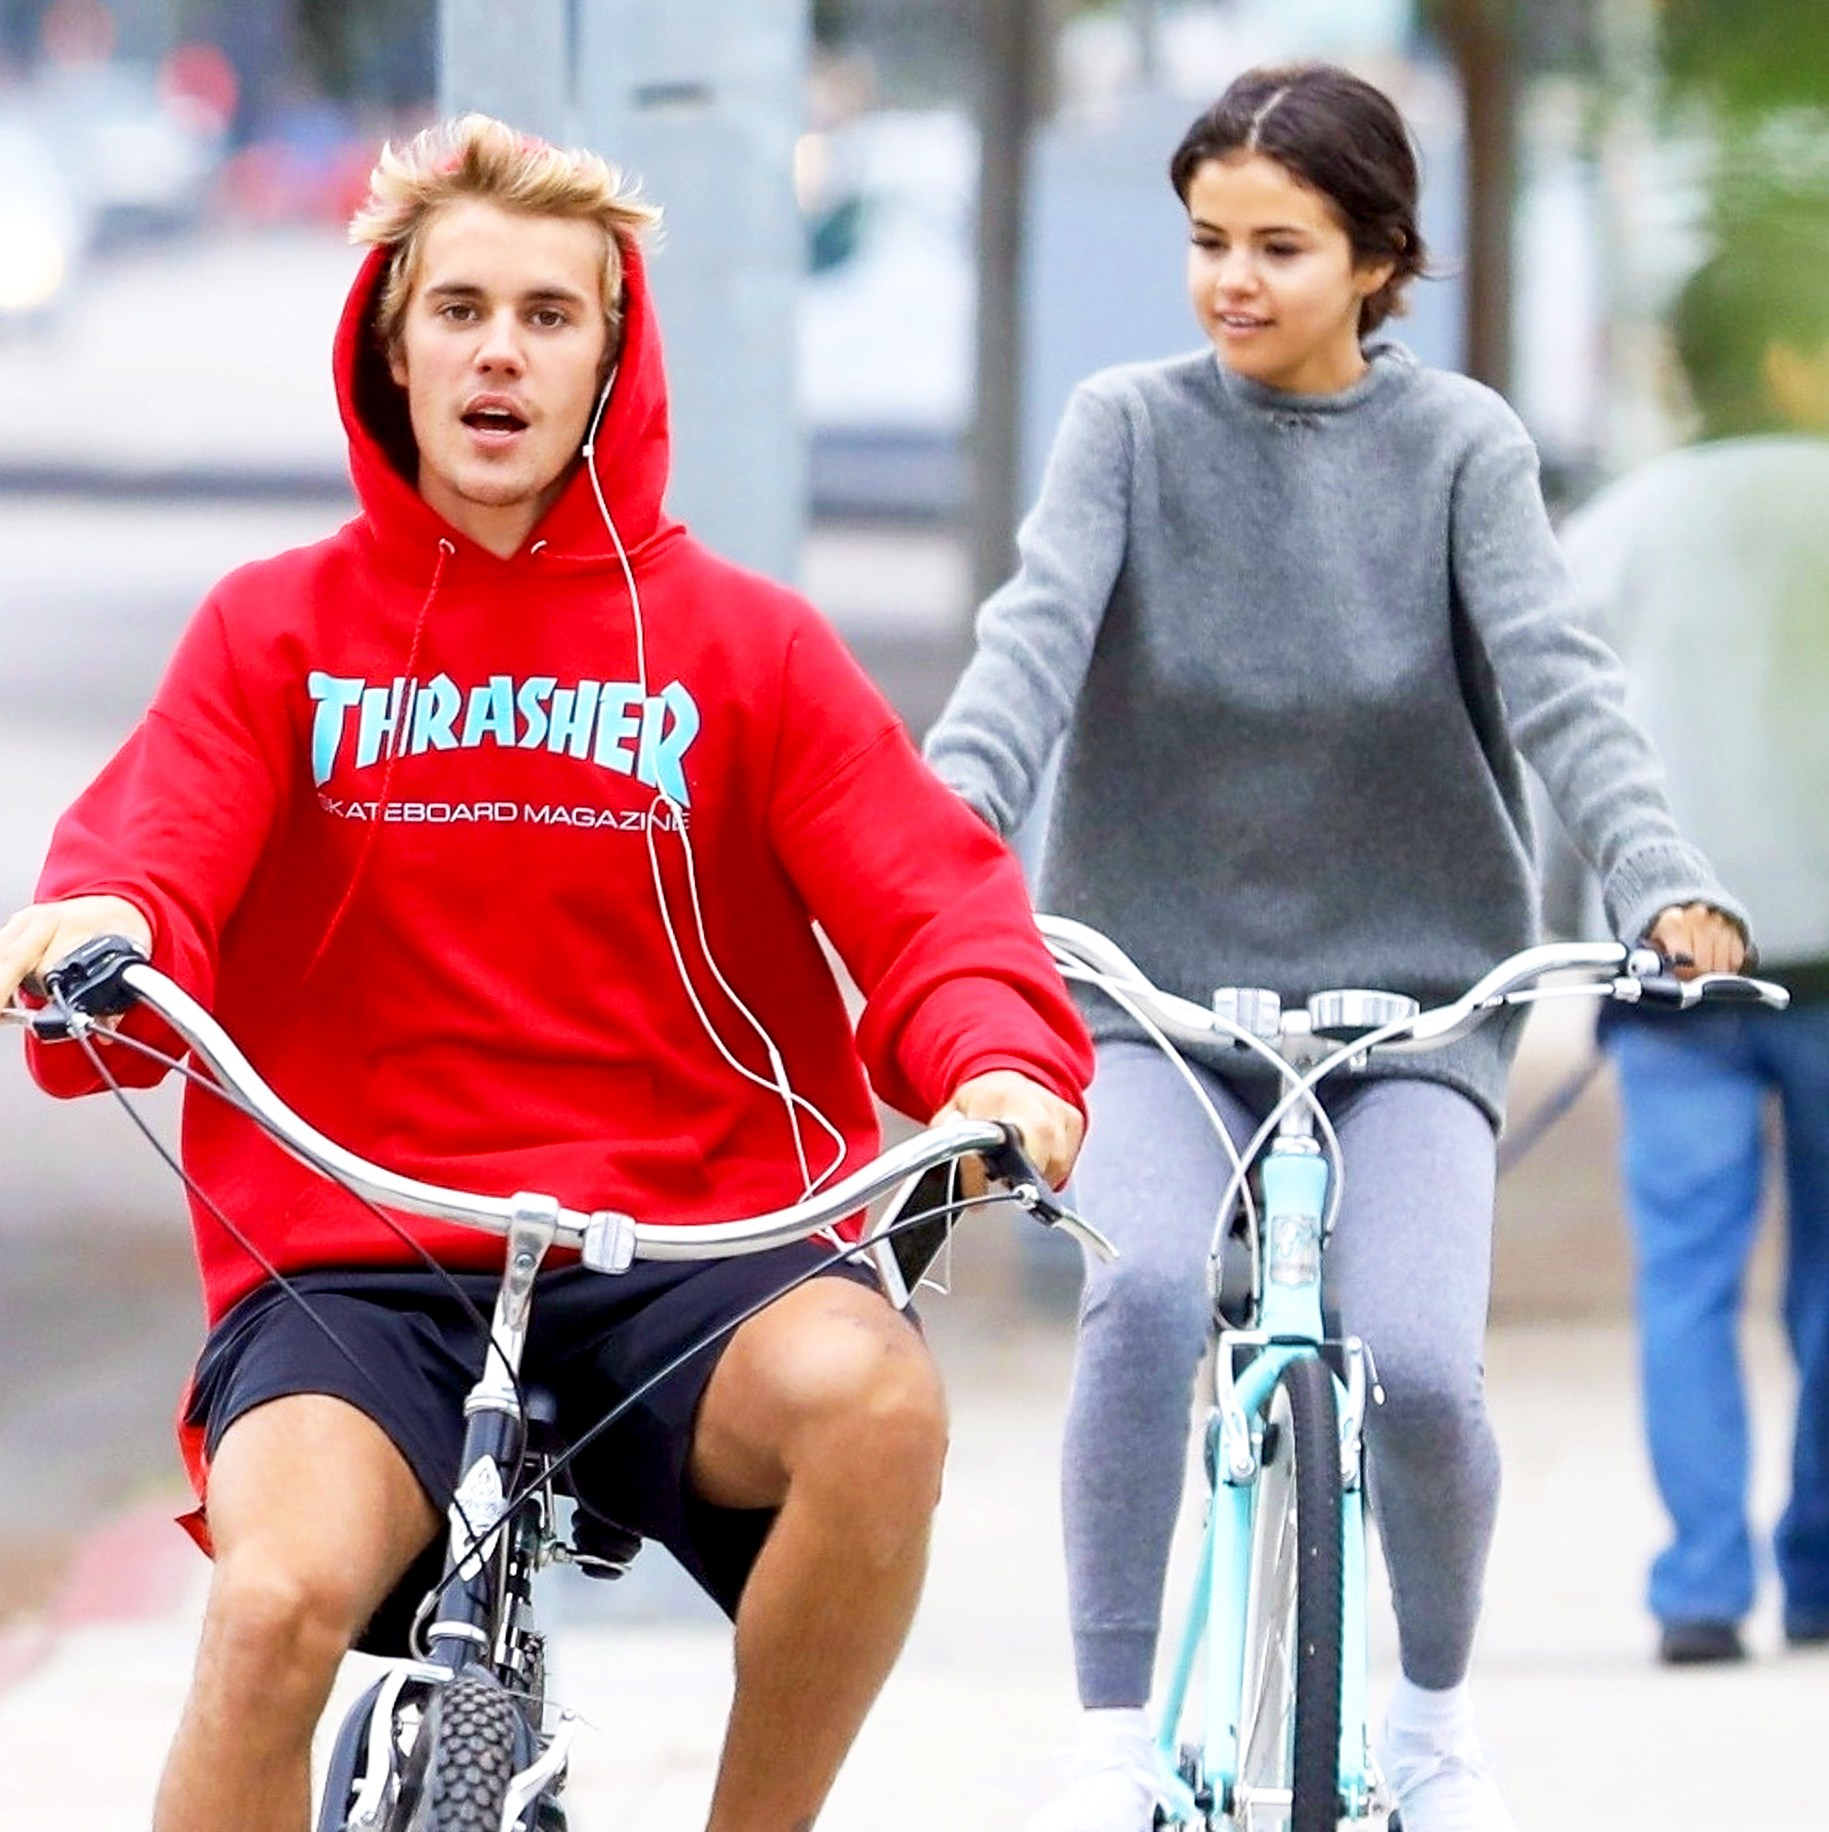 Justin Bieber and Selena Gomez ride bikes in Los Angeles on November 1, 2017.